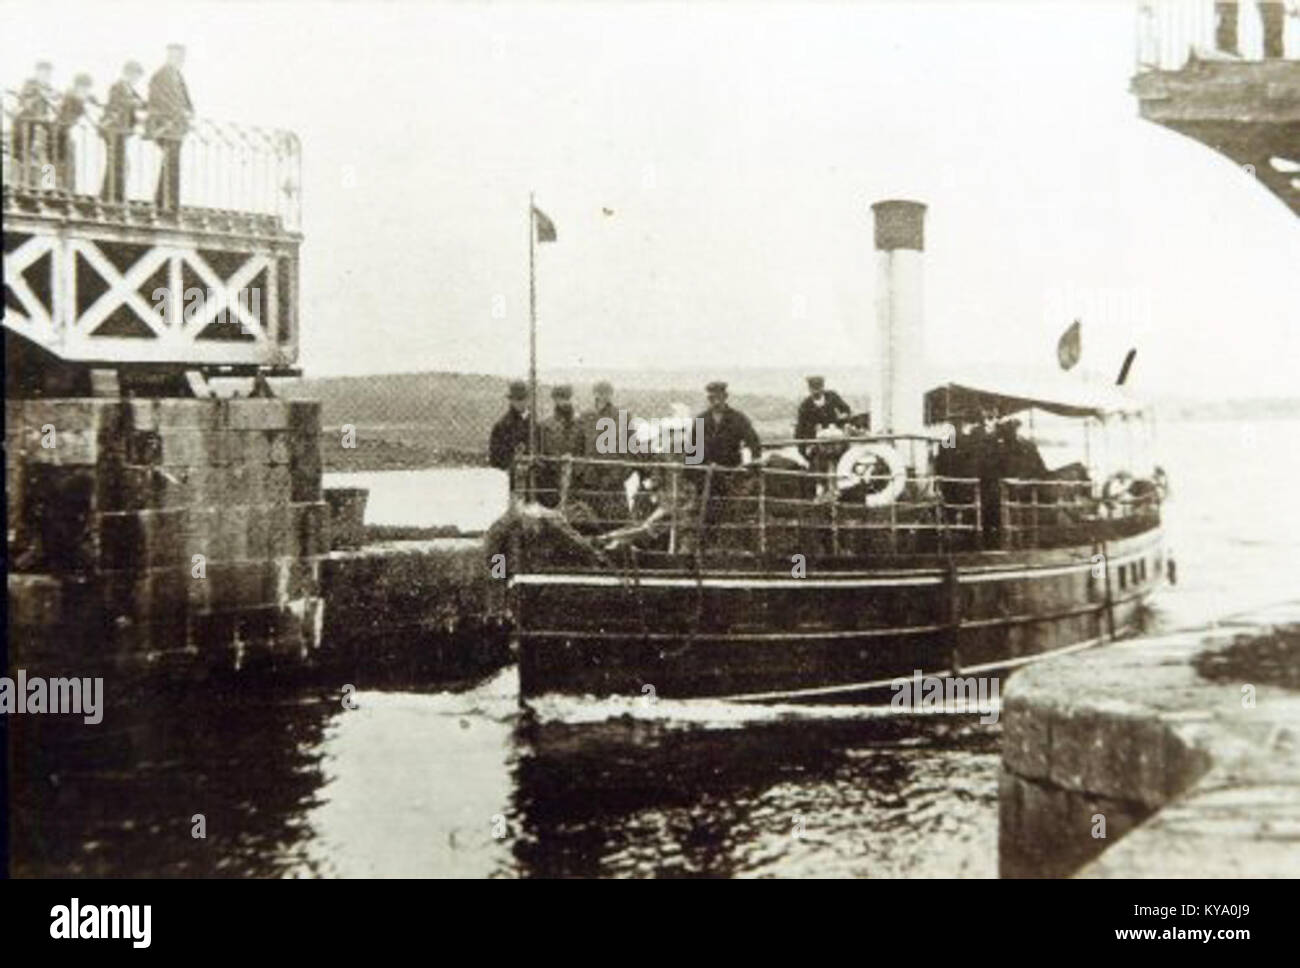 Steamer belonging to Bernard Forbes, 8th Earl of Granard, passing through Lanesborough Bridge in 1900 - Stock Image